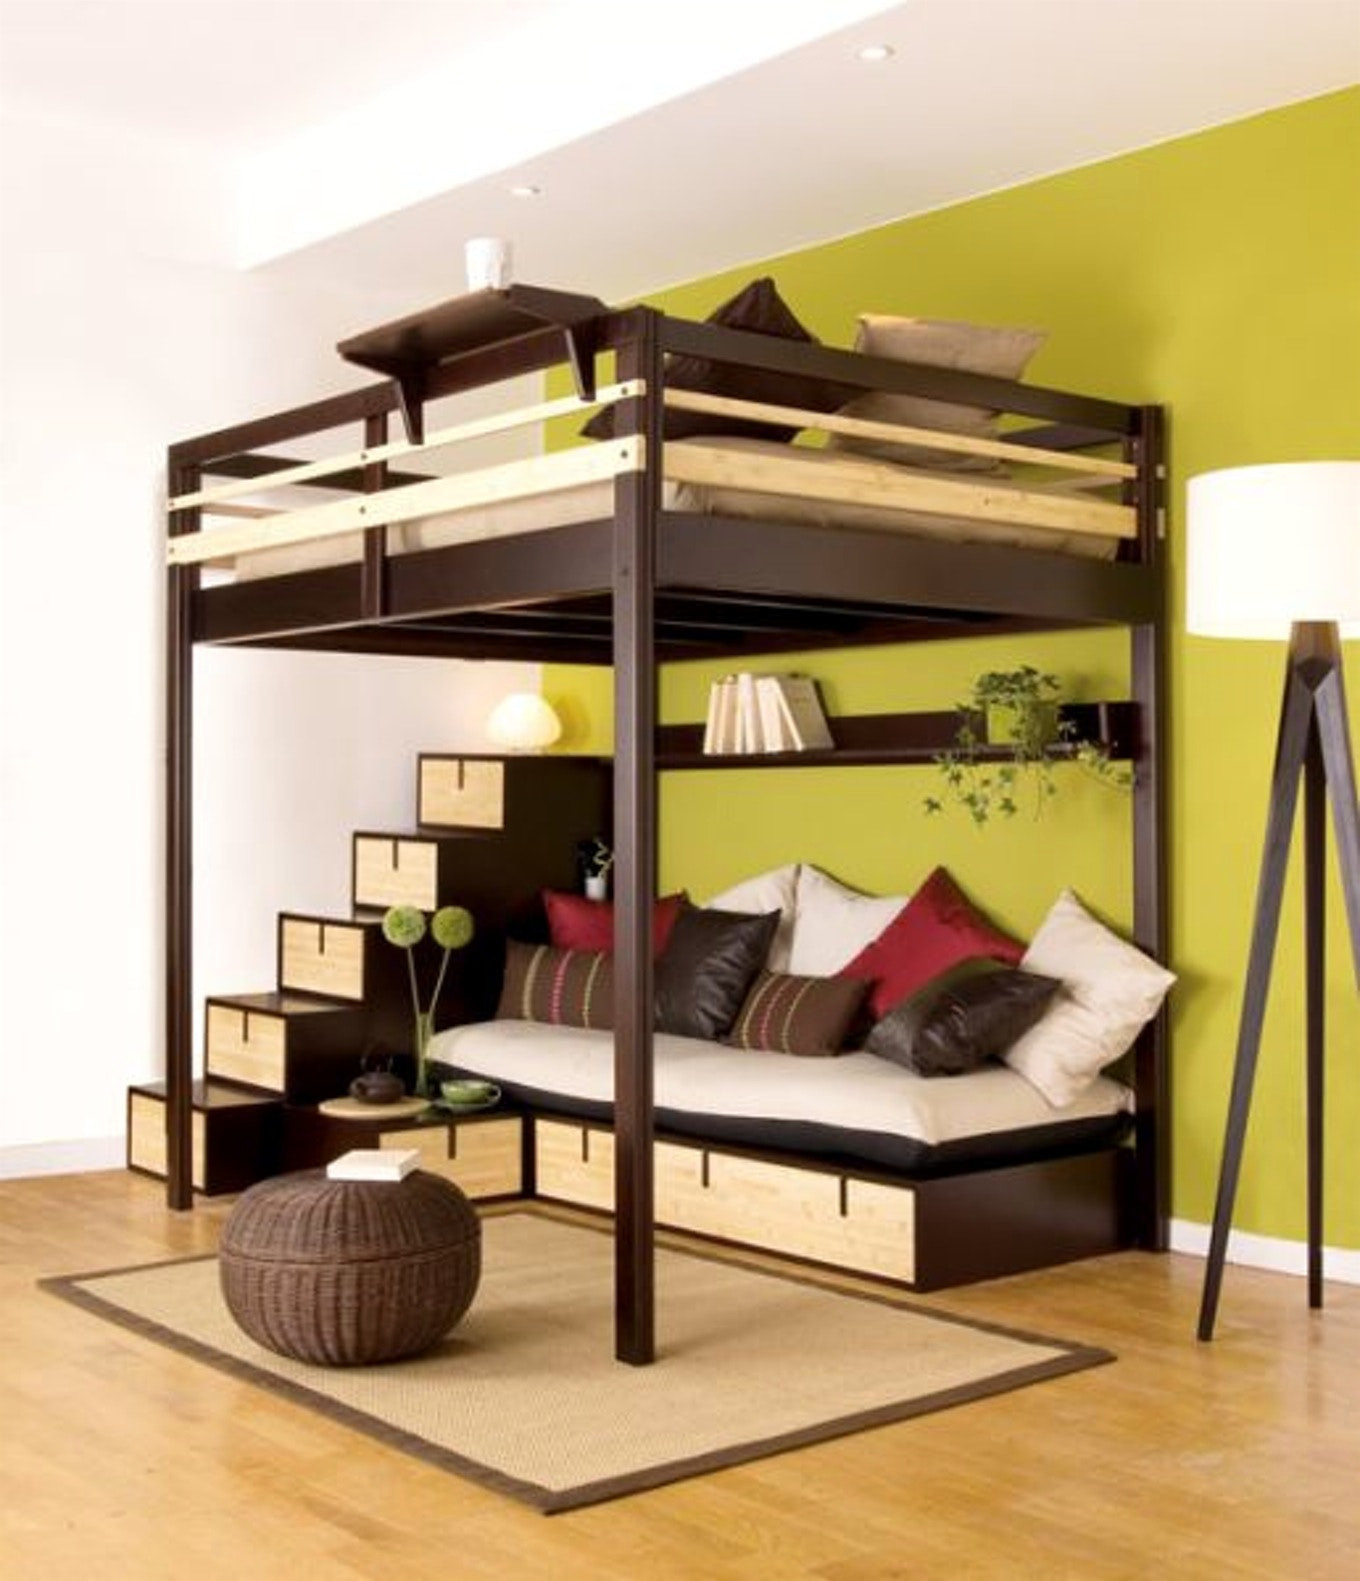 lit superpos ikea 3 places impressionnant image canap. Black Bedroom Furniture Sets. Home Design Ideas